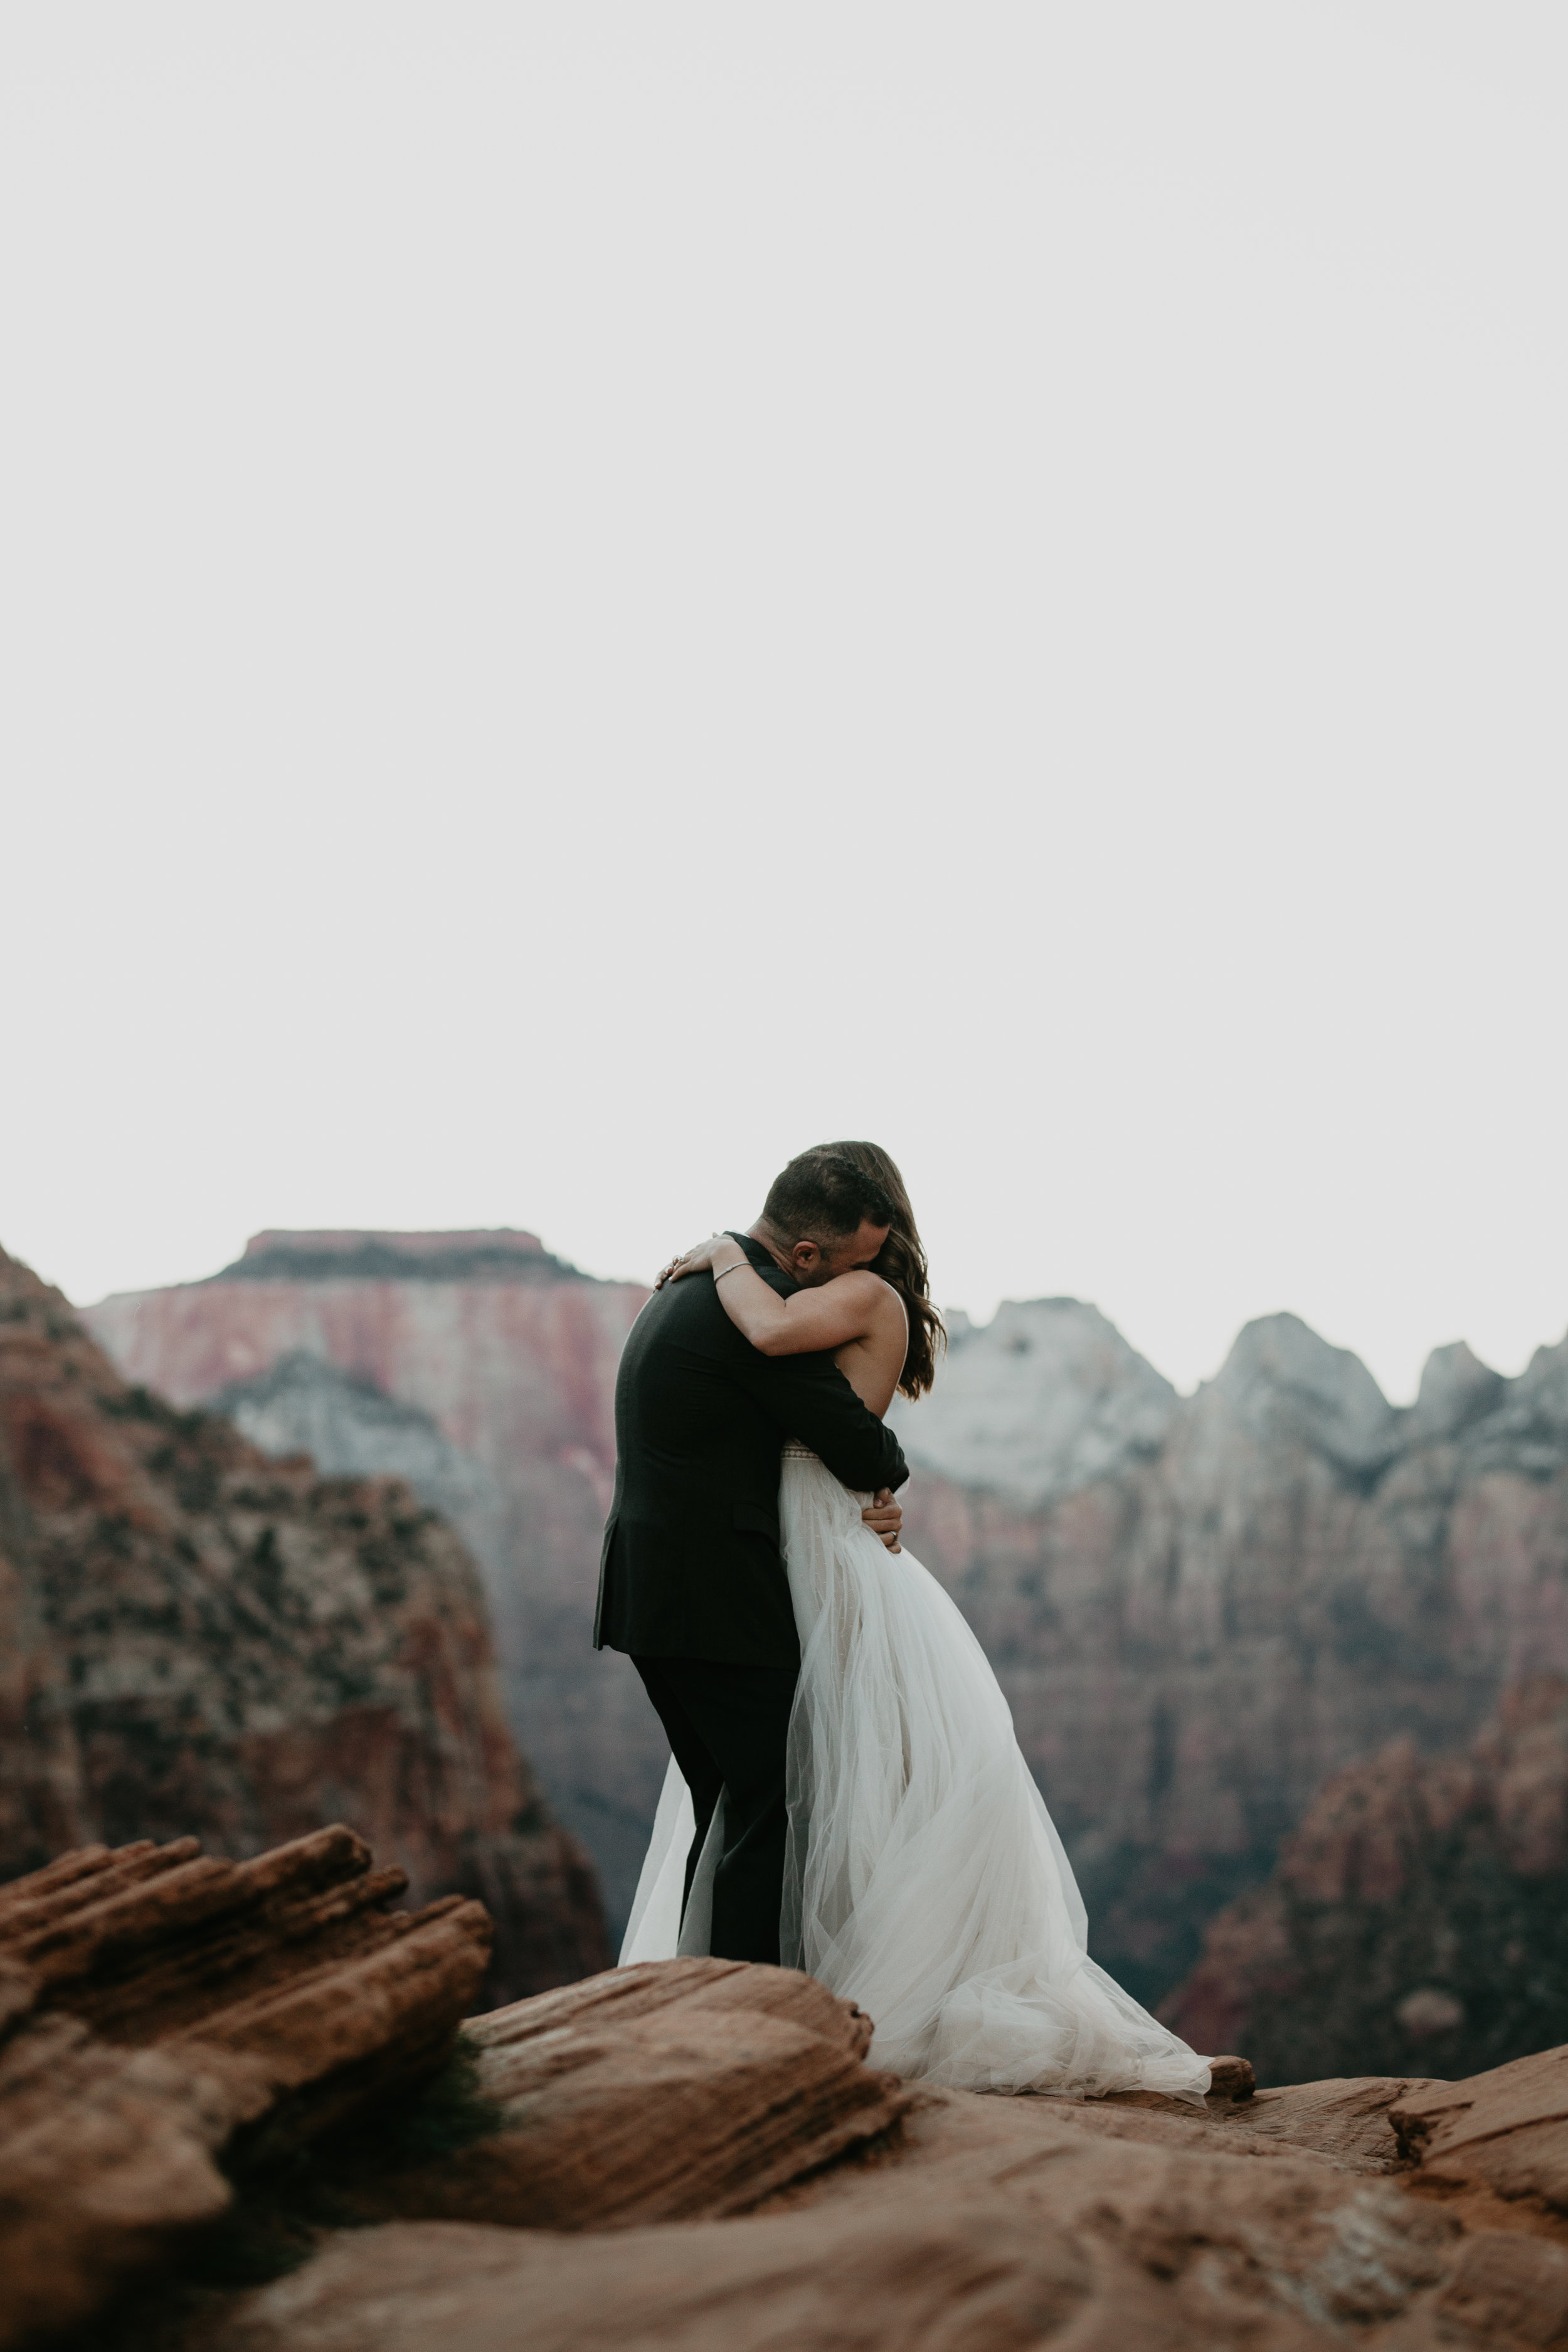 nicole-daacke-photography-zion-national-park-elopement-photographer-canyon-overlook-trail-elope-hiking-adventure-wedding-photos-fall-utah-red-rock-canyon-stgeorge-eloping-photographer-80.jpg